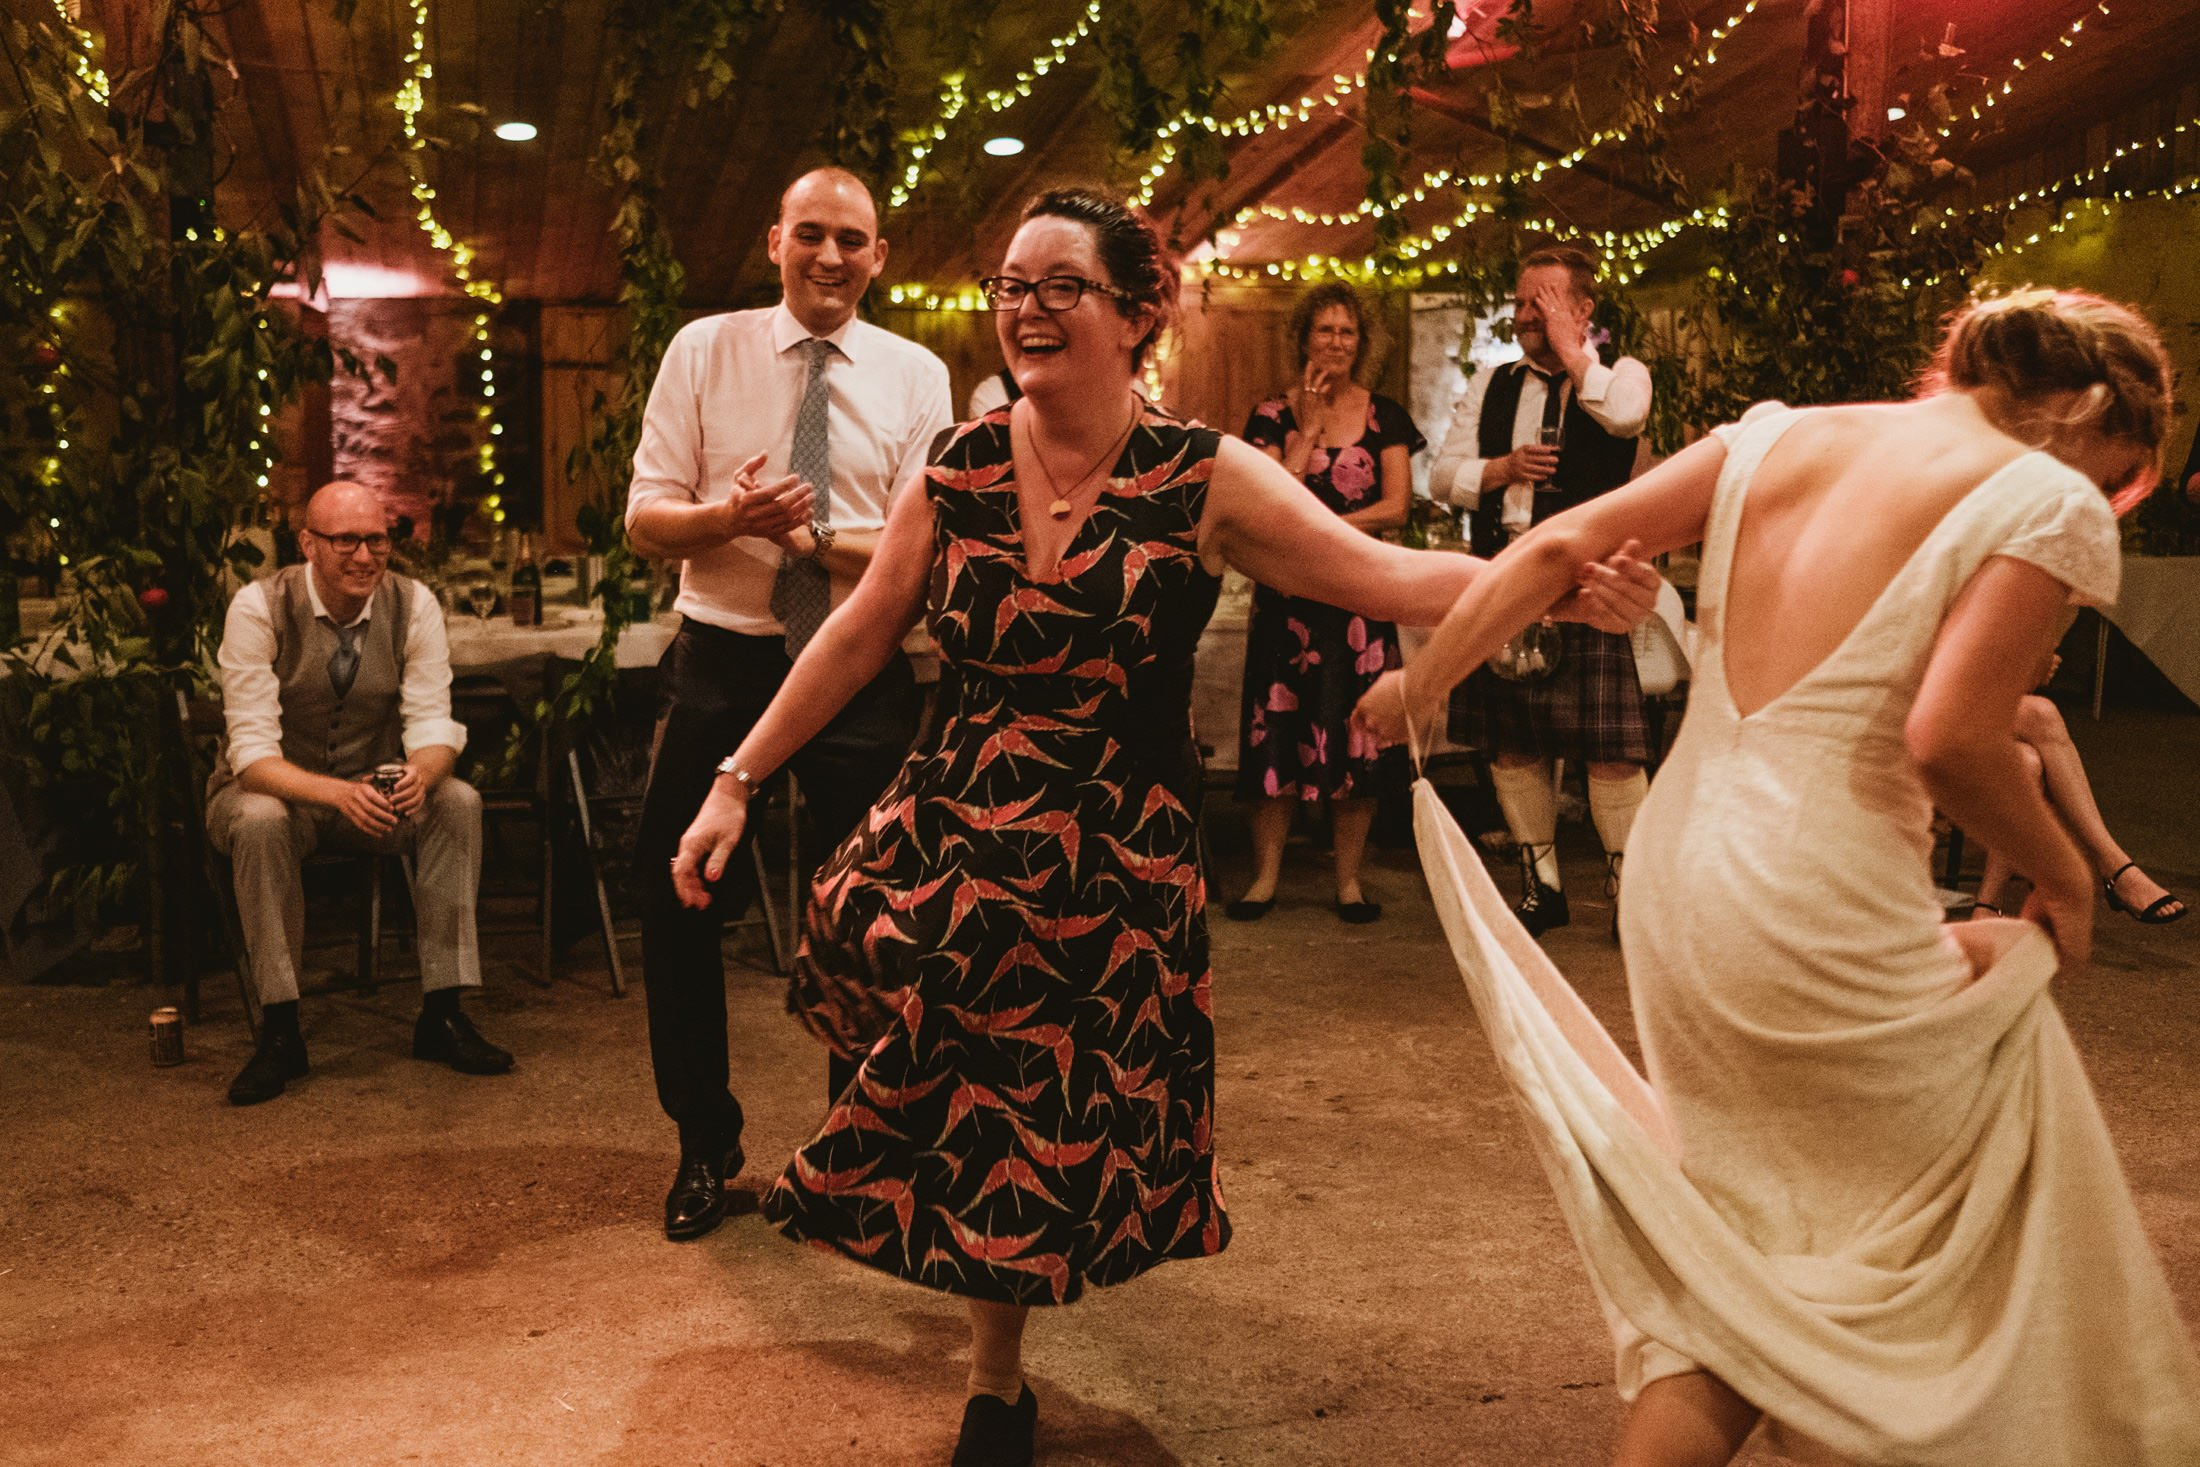 guests ceilidh dancing at Comrie Croft